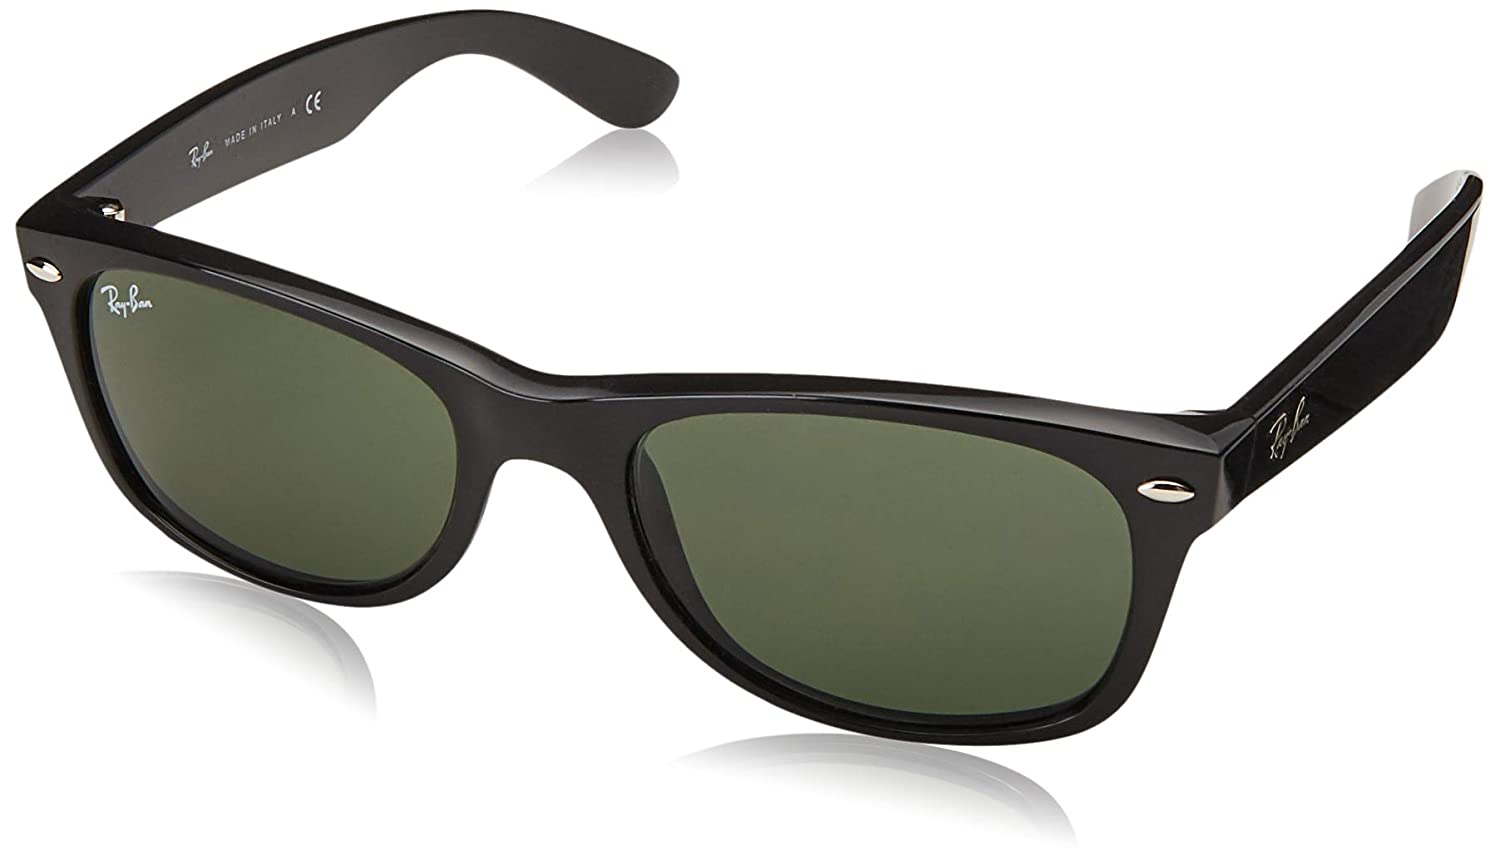 909806dee8a Amazon.com  Ray-Ban NEW WAYFARER - BLACK Frame CRYSTAL GREEN Lenses 52mm  Non-Polarized  Ray-Ban  Shoes